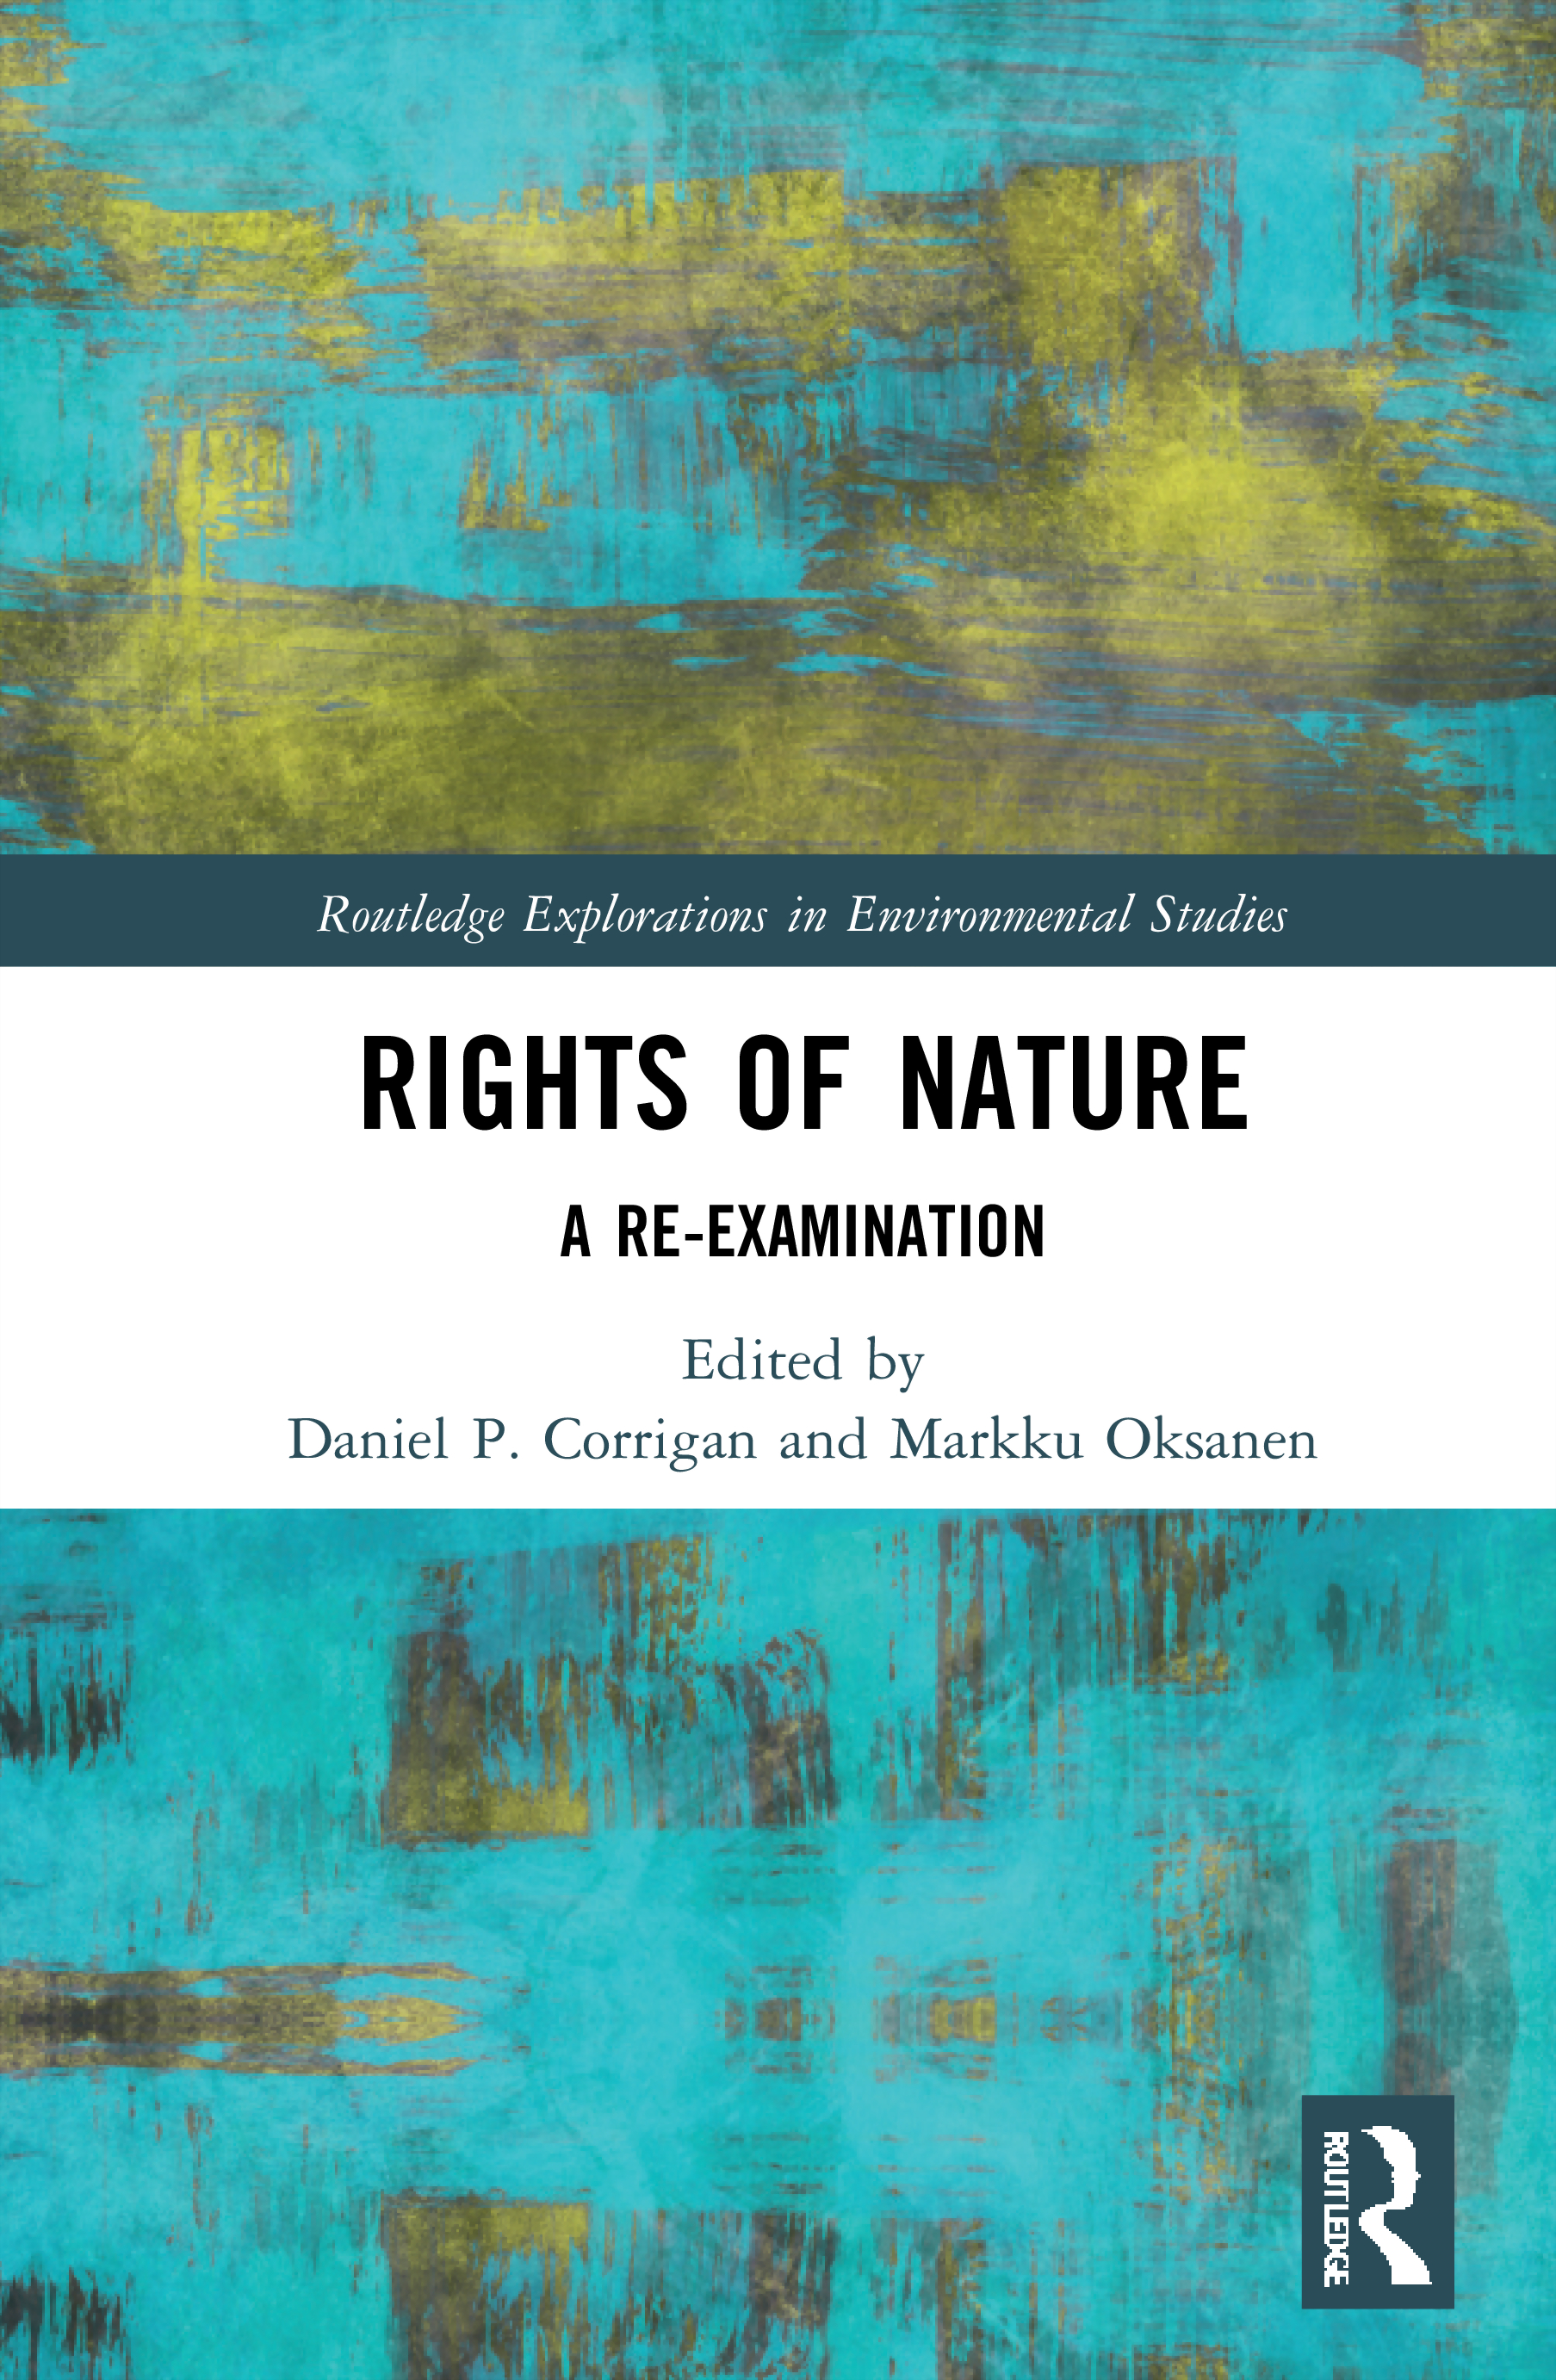 The Rights of Nature as Politics